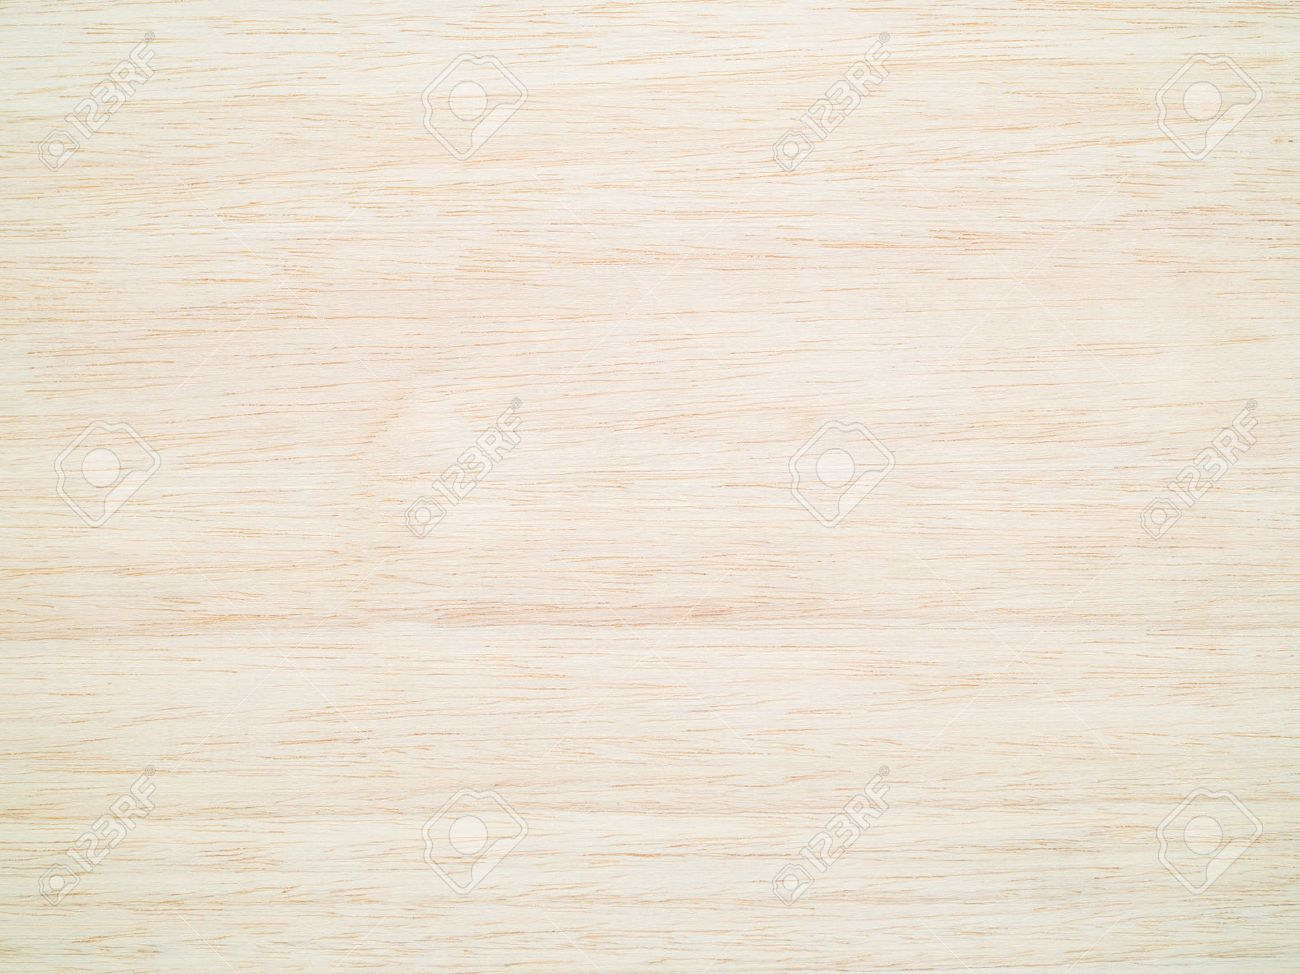 Light wood texture pattern for background stock photo picture and light wood texture pattern for background stock photo 47046380 voltagebd Gallery